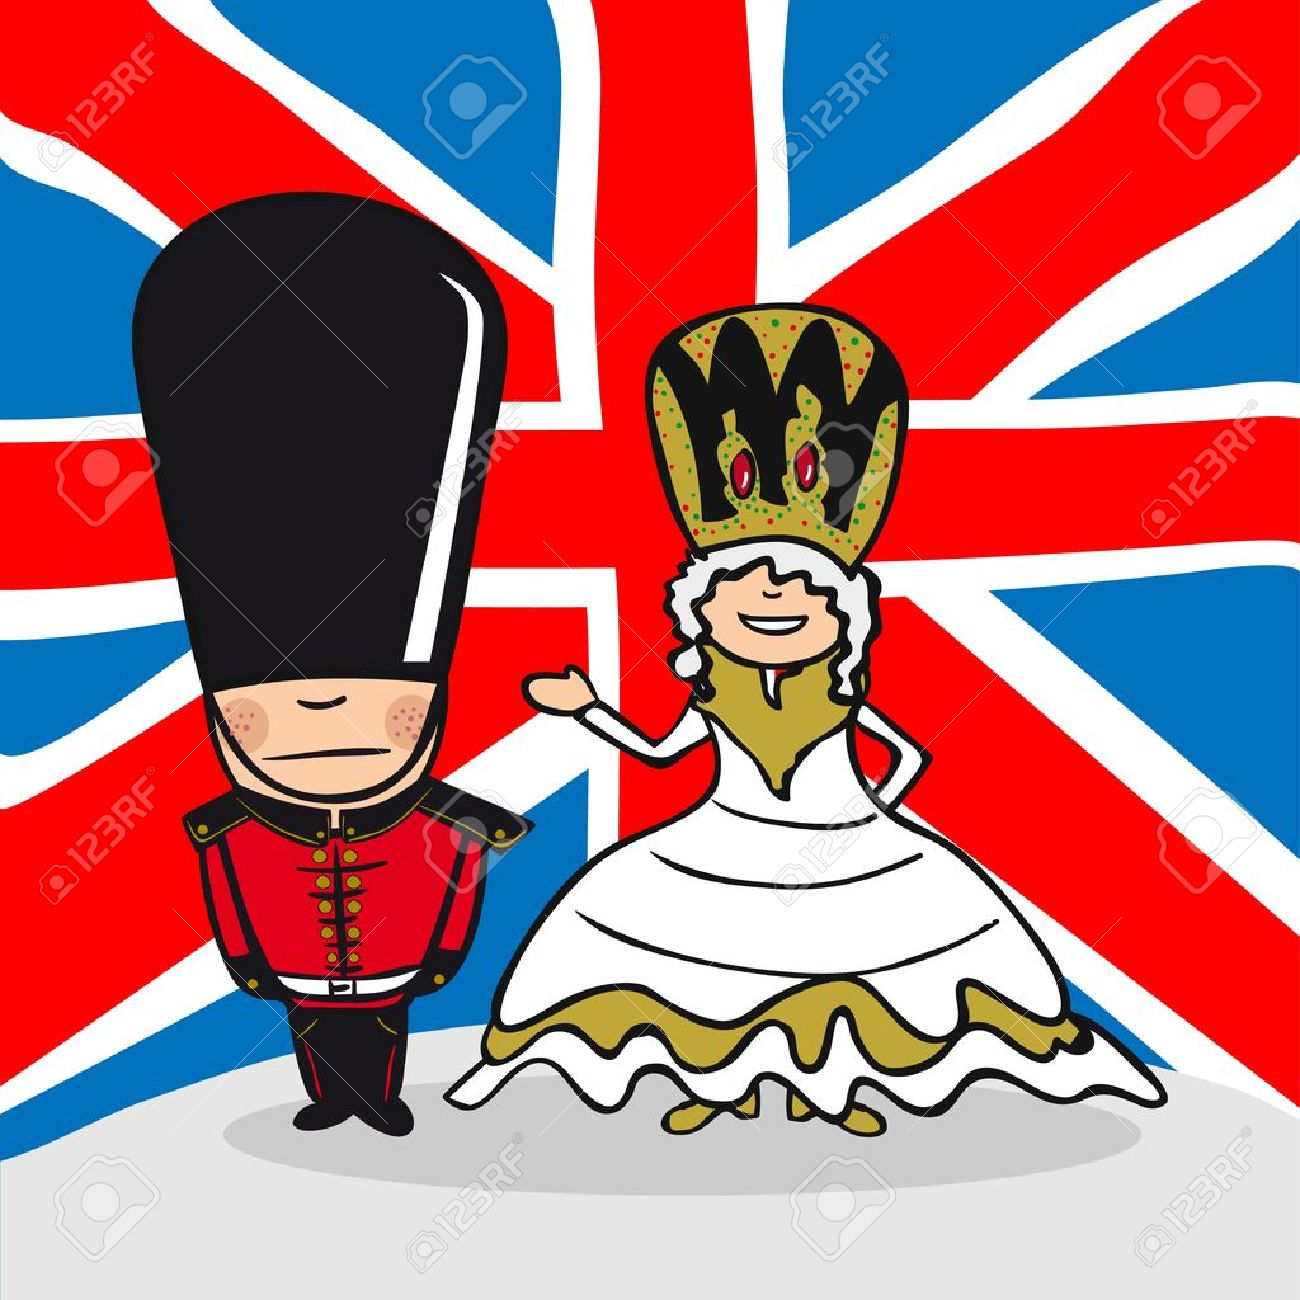 English man and woman cartoon couple with national flag background. Vector illustration layered for easy editing. Stock Vector - 20602877